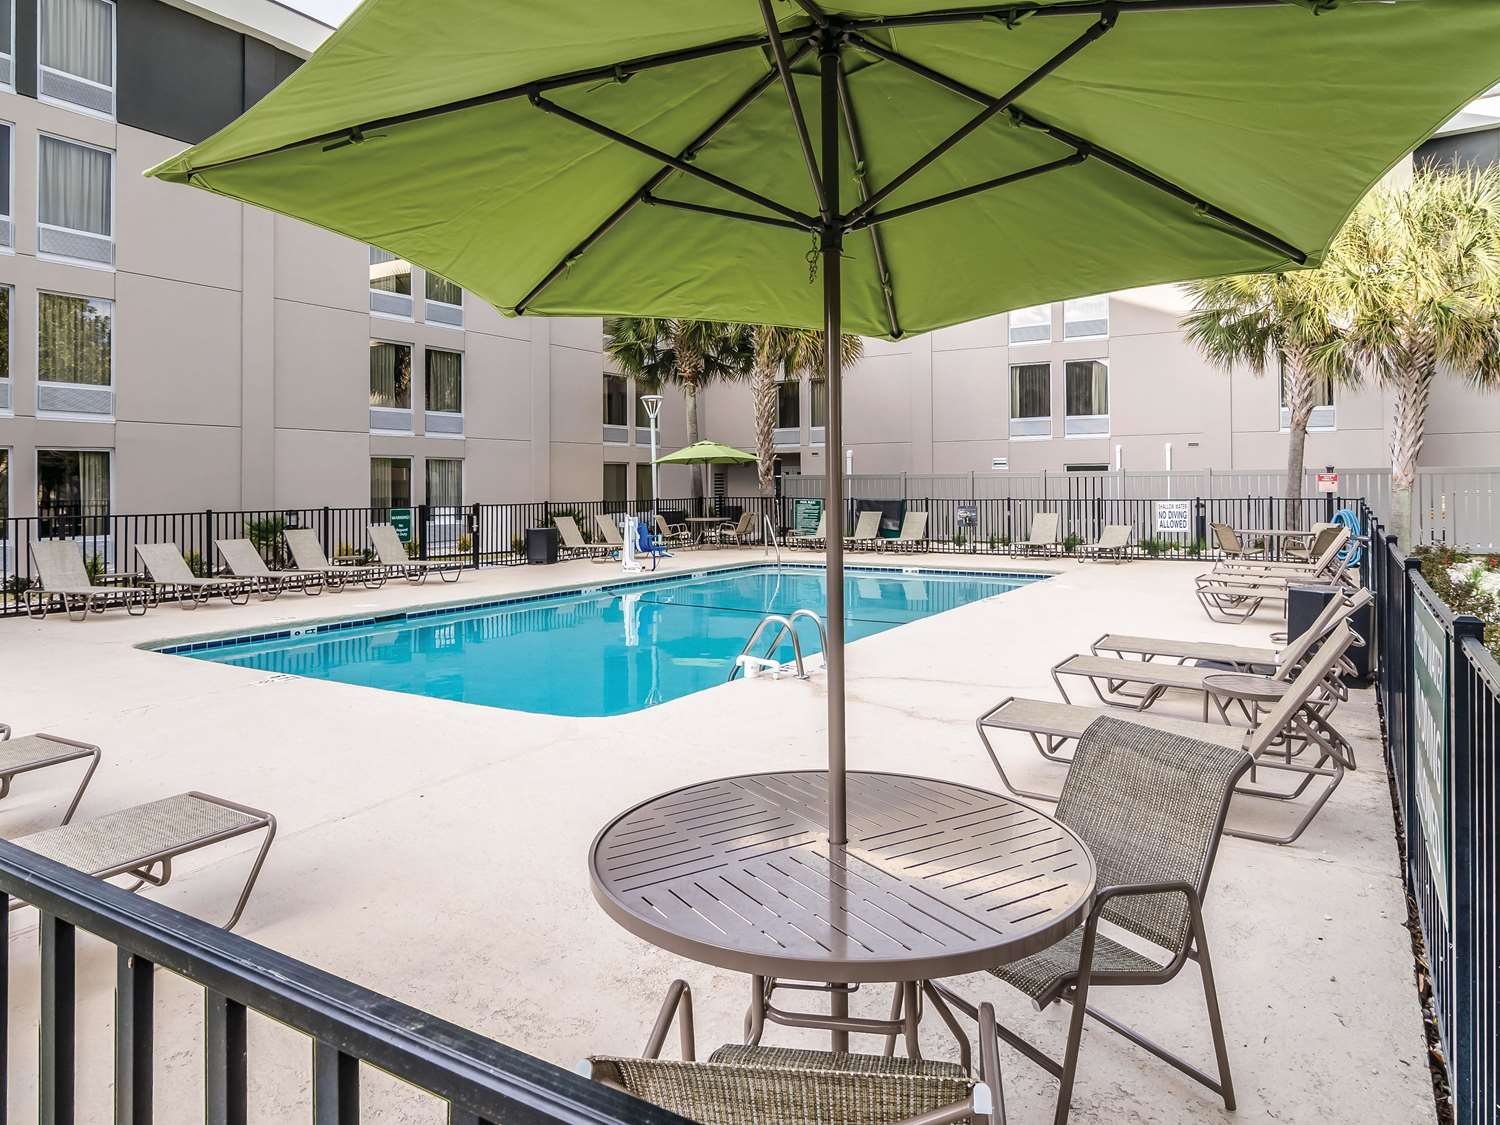 Pool - La Quinta Inn & Suites at 48th Ave Myrtle Beach